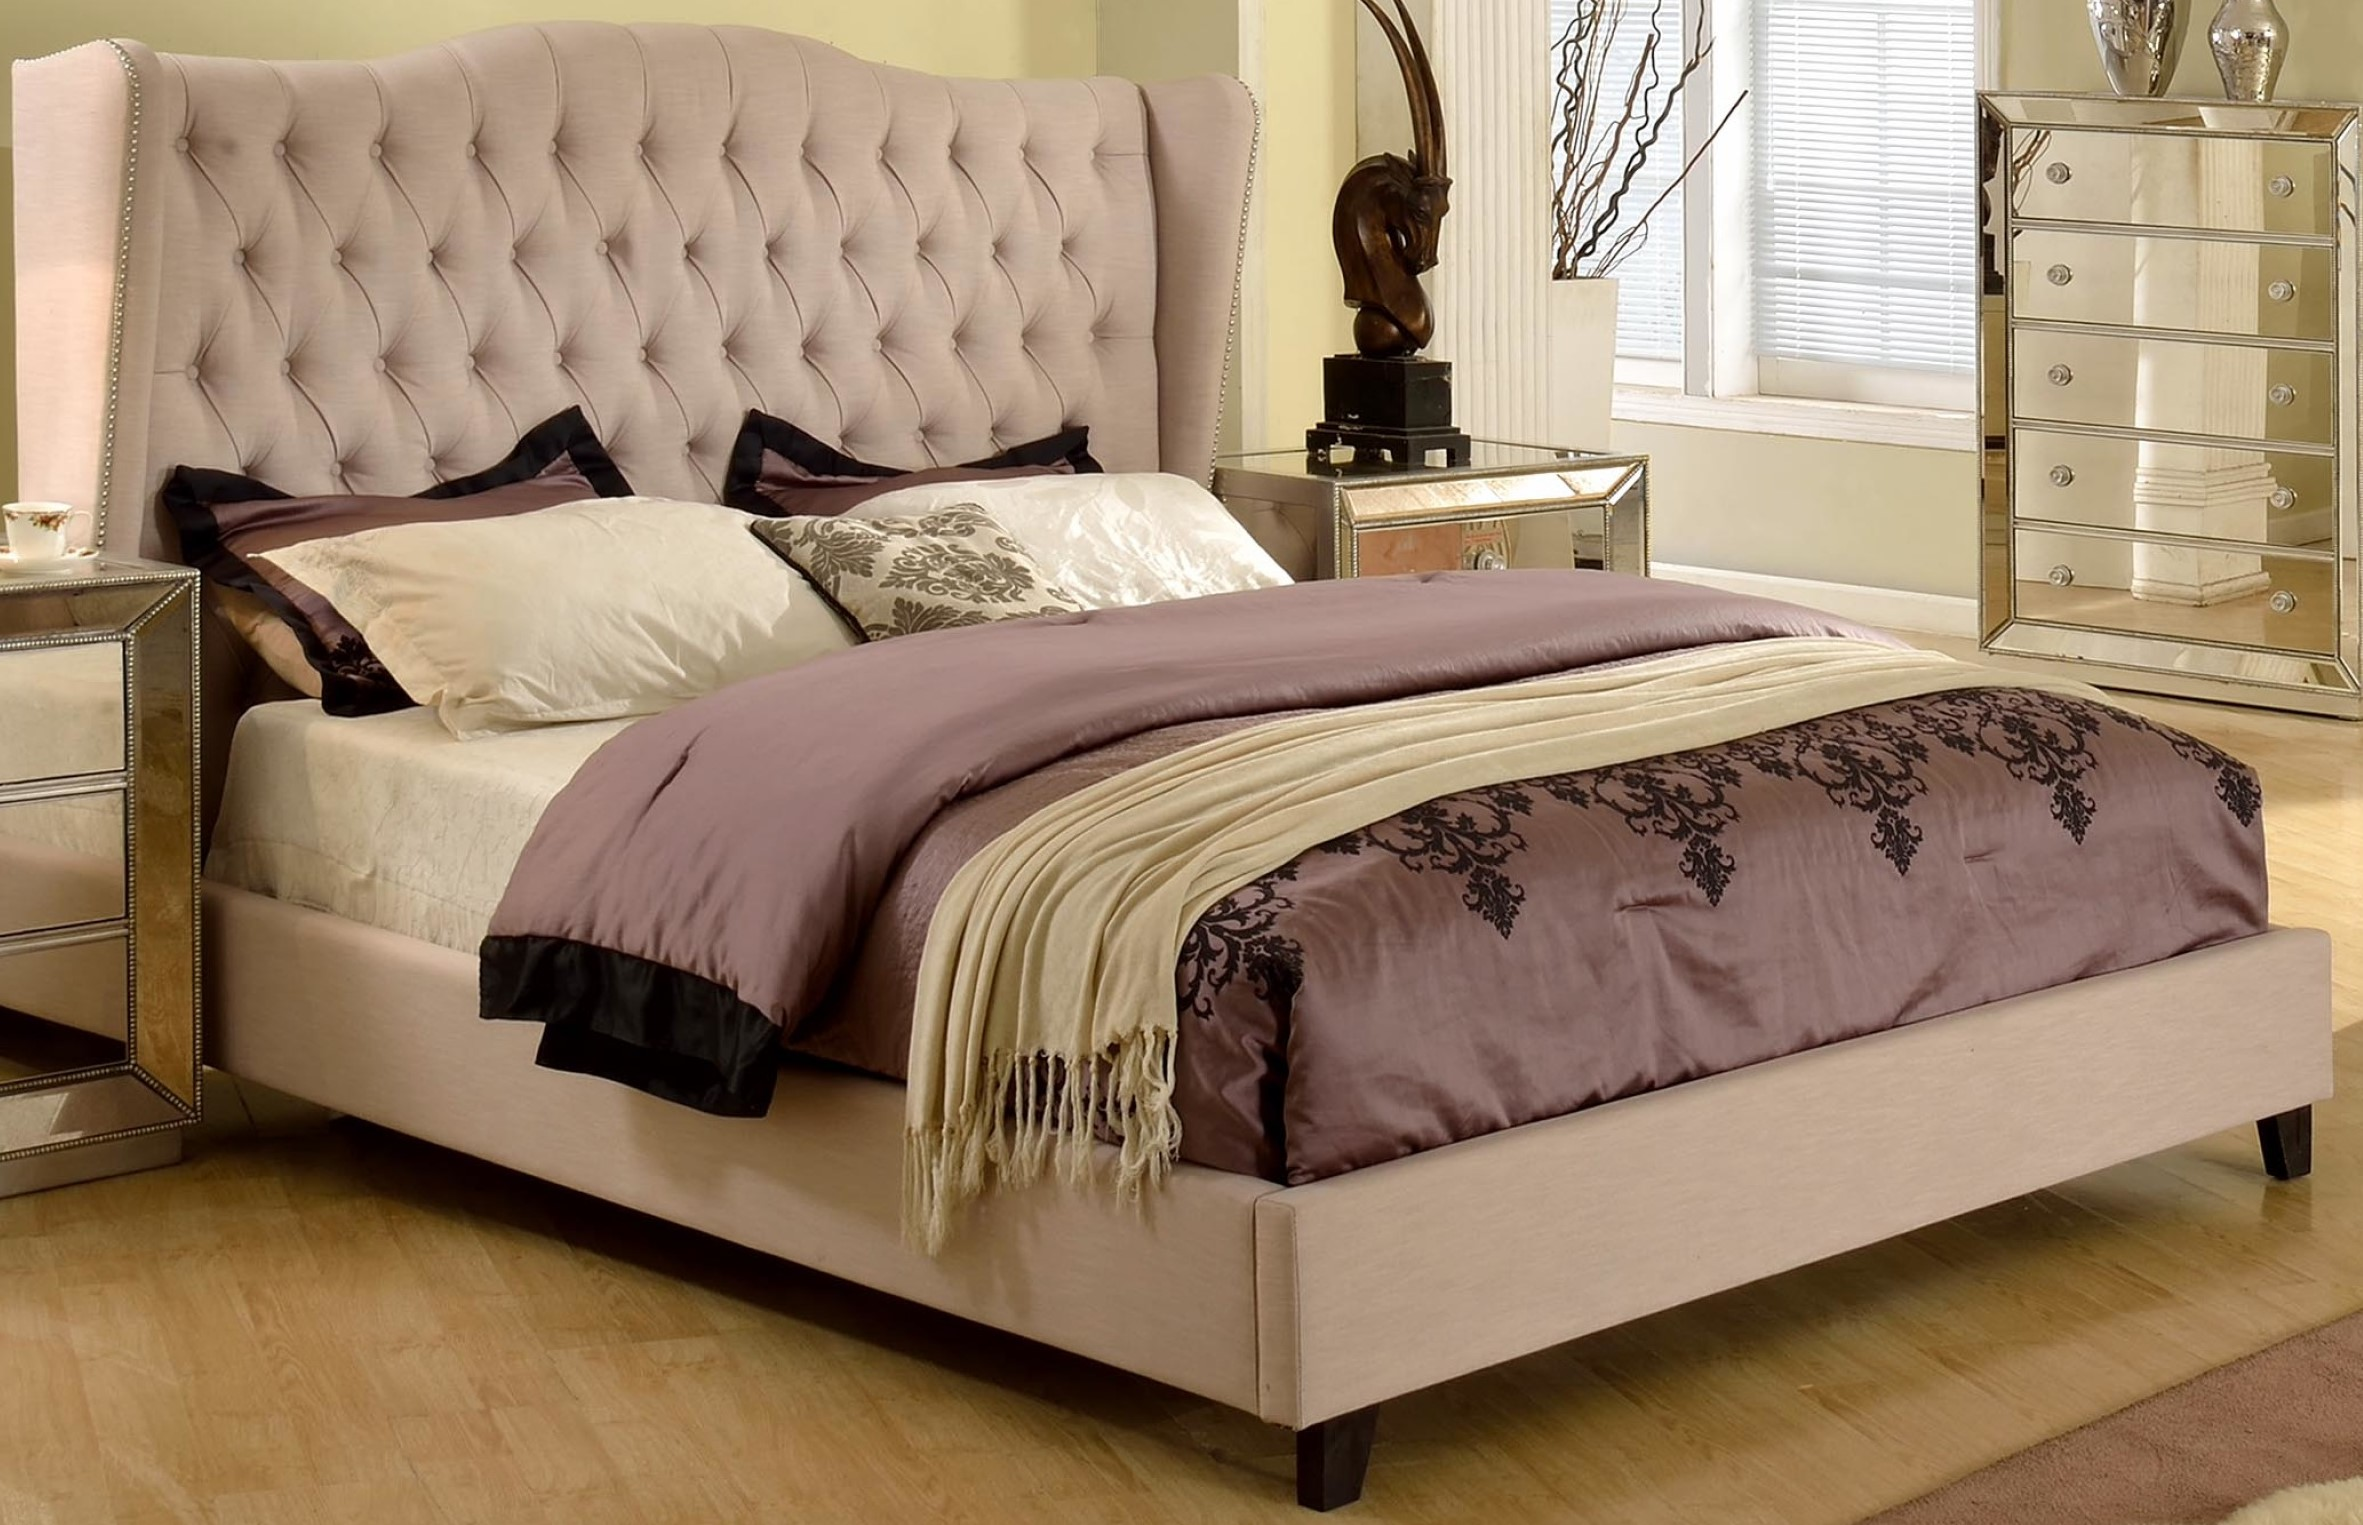 Contemporary taupe est king size bedroom bed hot sectionals for Bedroom benches king size bed